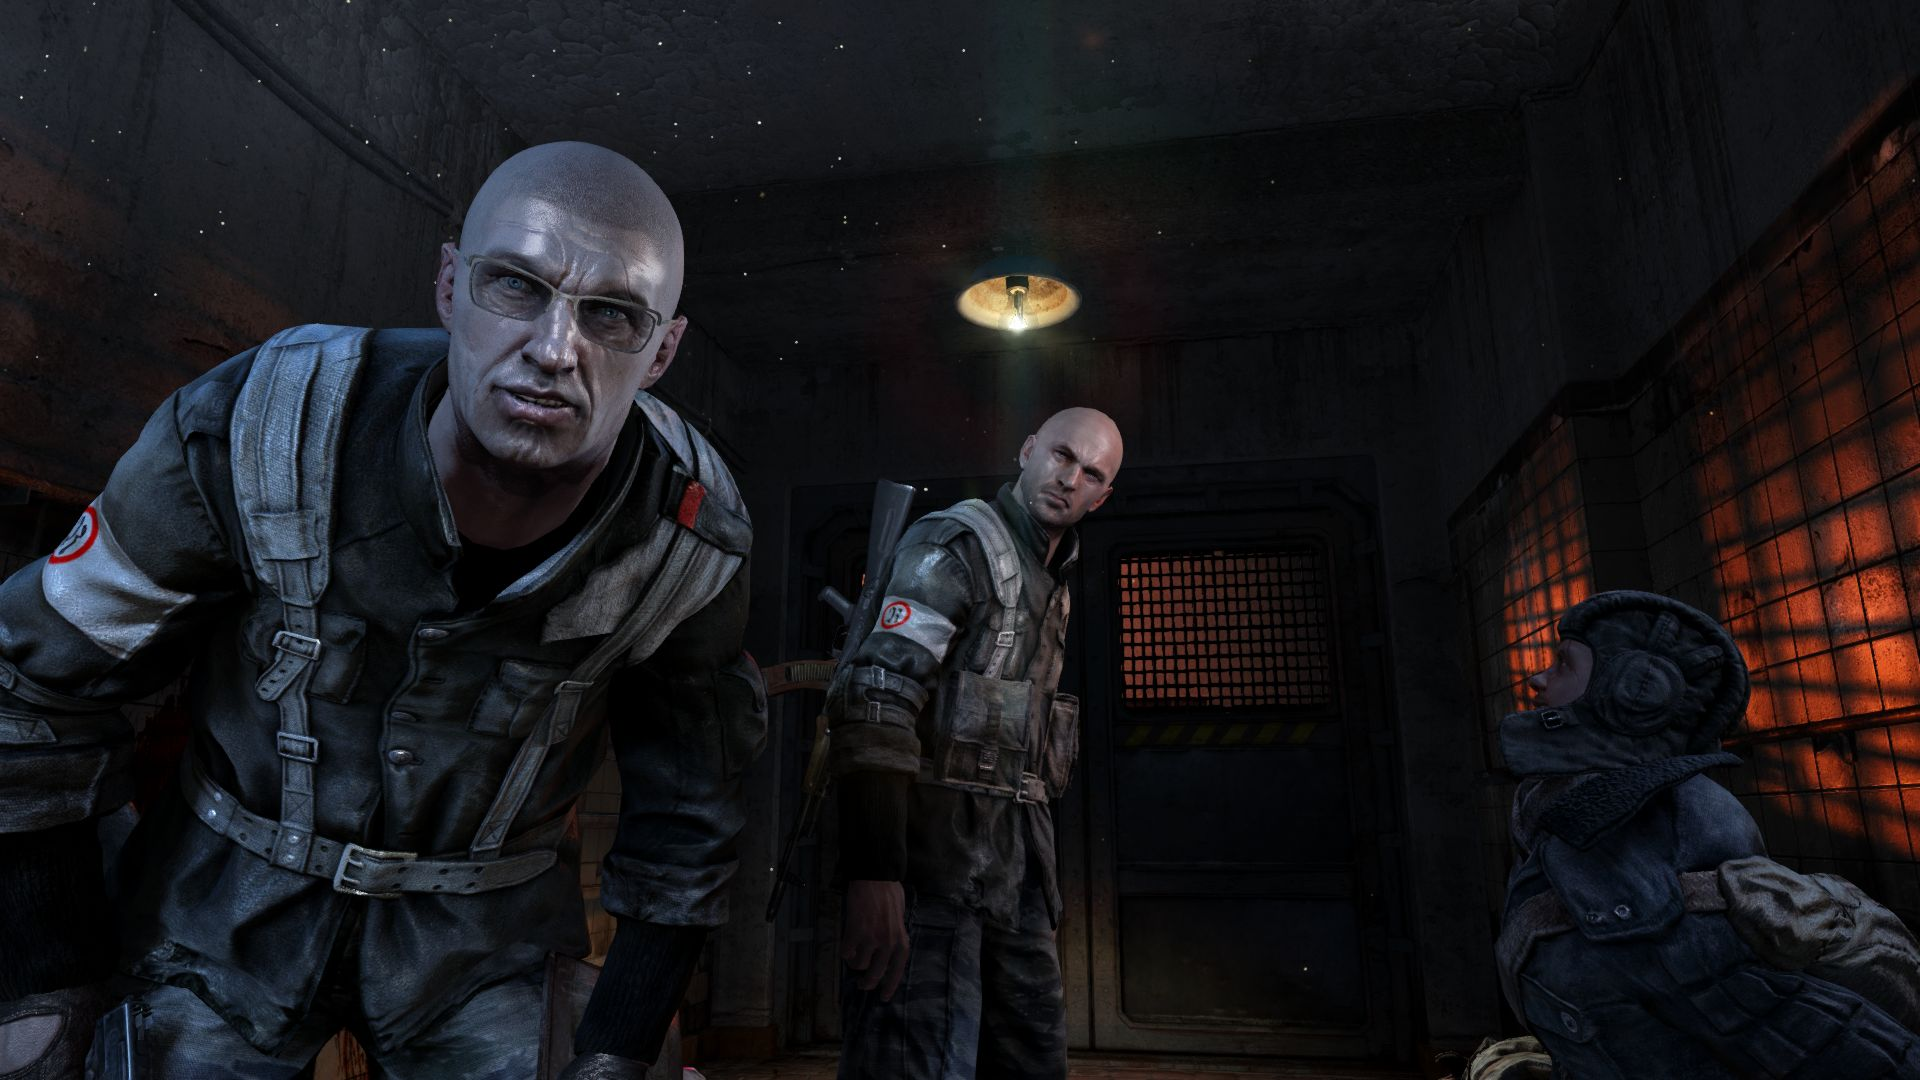 metro 2033 reich related - photo #1